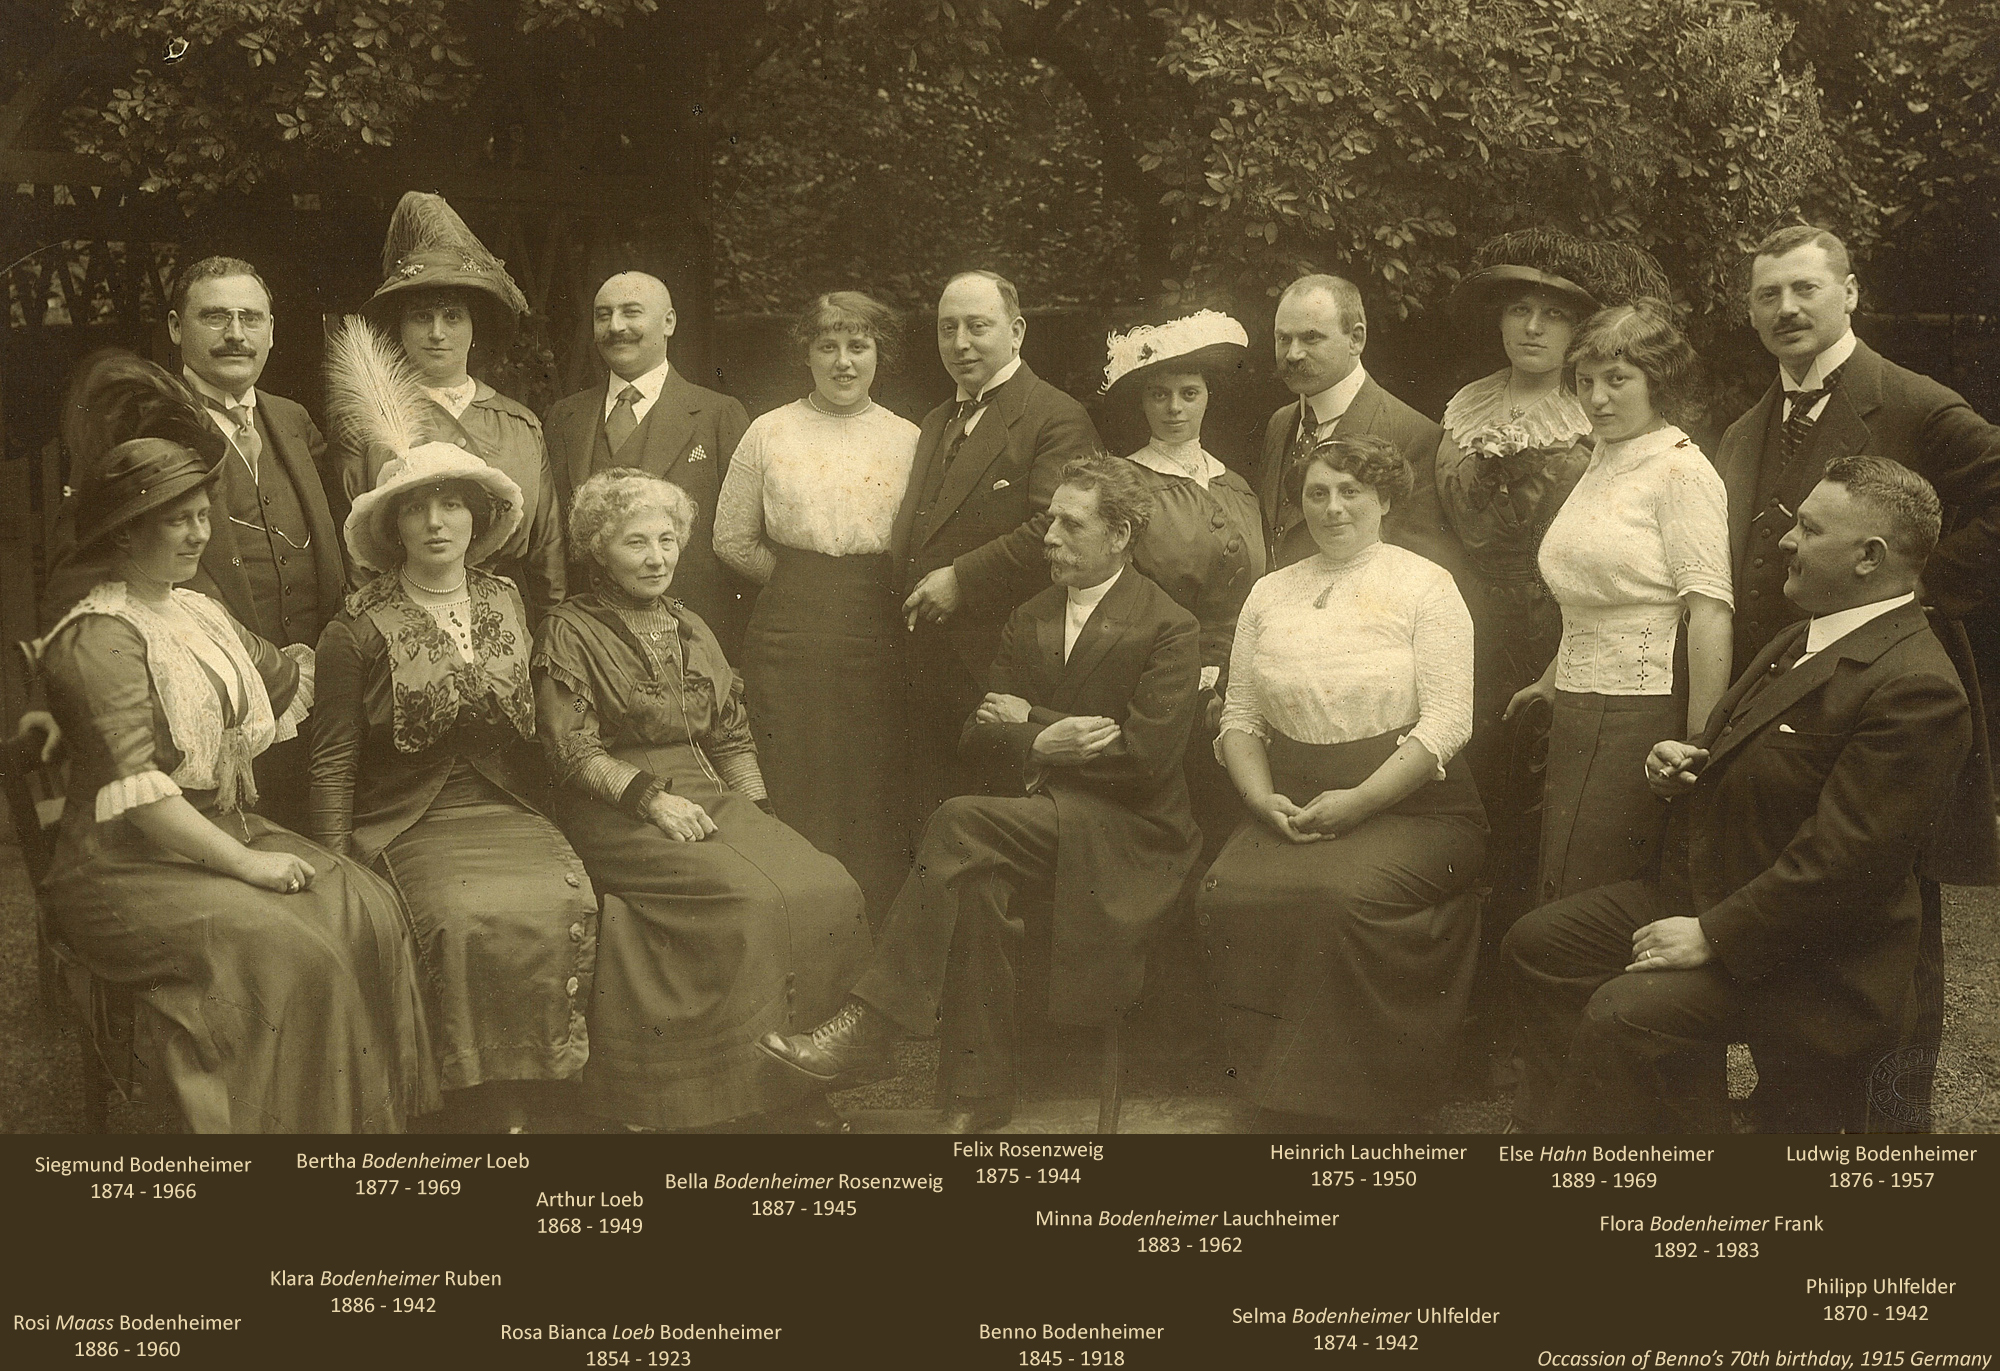 Photo 6 - Benno Bodenheimer with family circa 1915 - cleaned annotated